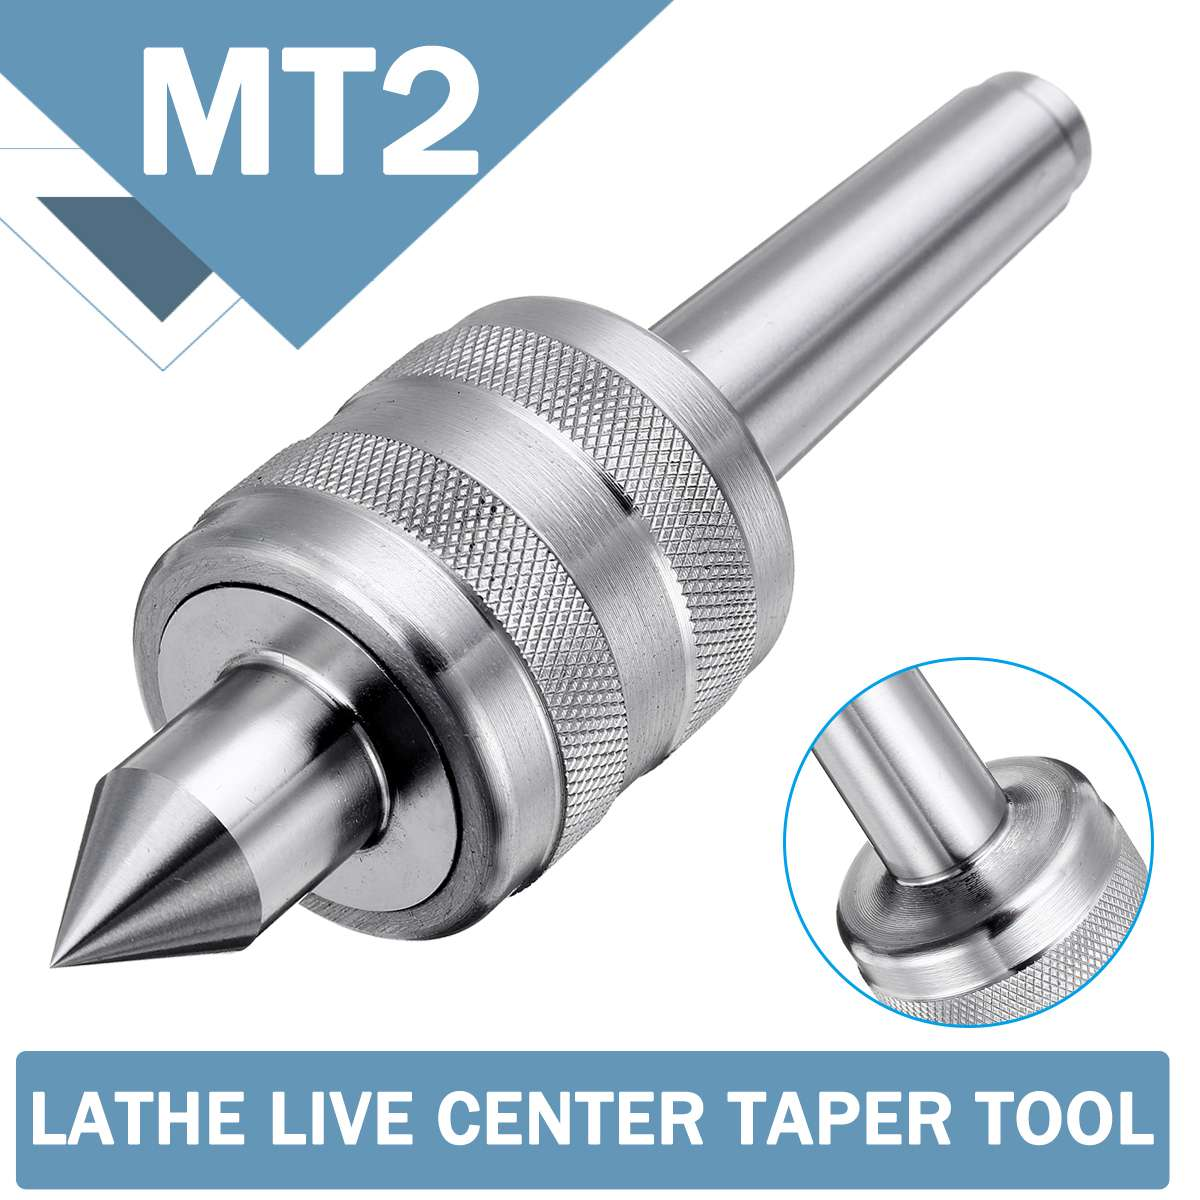 New Accuracy Steel Silver MT2 0 001 Lathe Live Center Taper Tool Live Revolving Milling Center Taper Machine Accessories